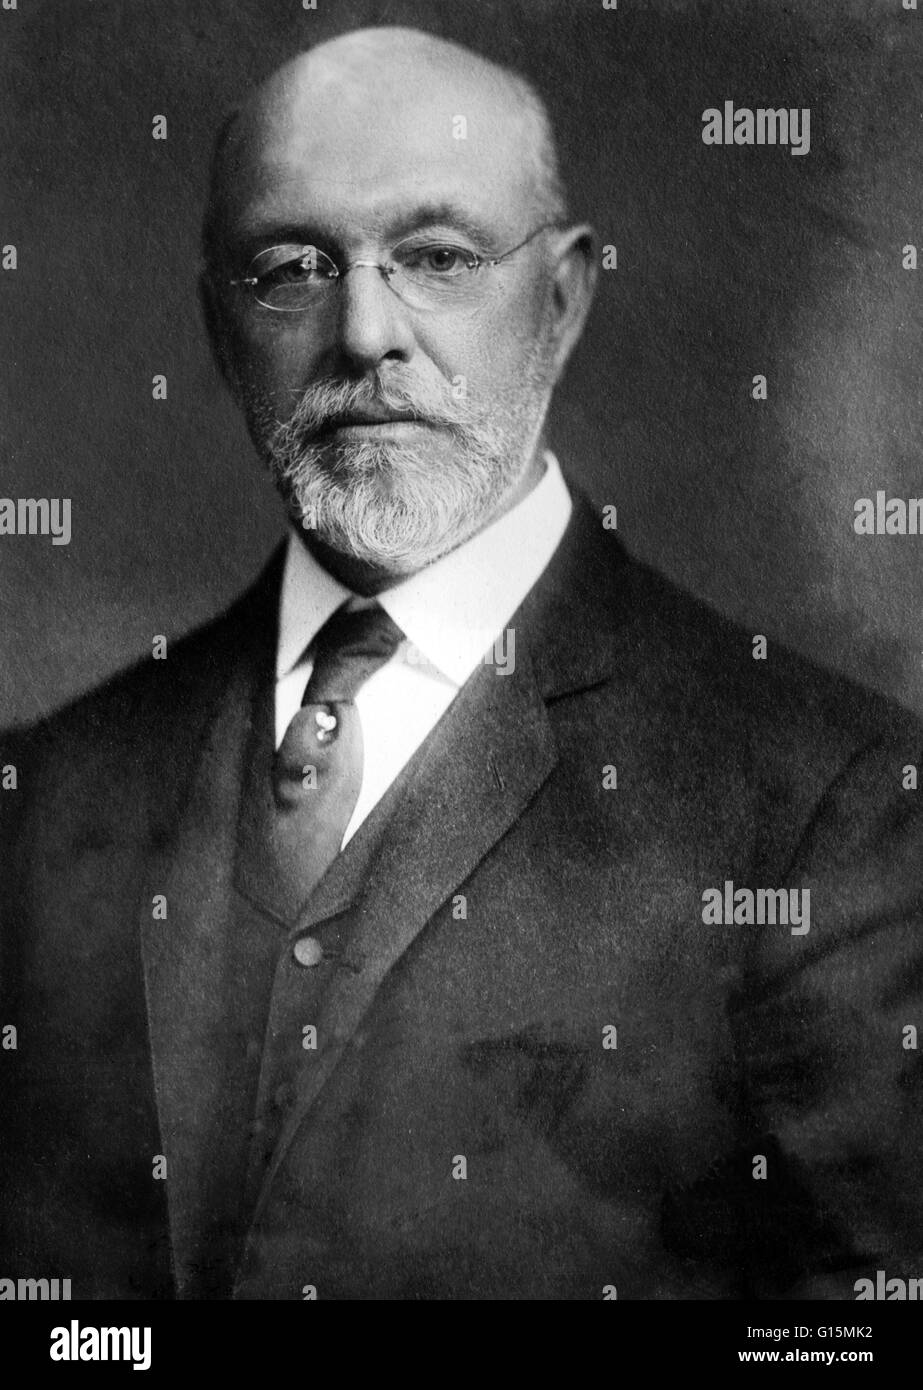 Ira Remsen (February 10, 1846 - March 4, 1927) was an American chemist. In 1875, after researching pure chemistry - Stock Image